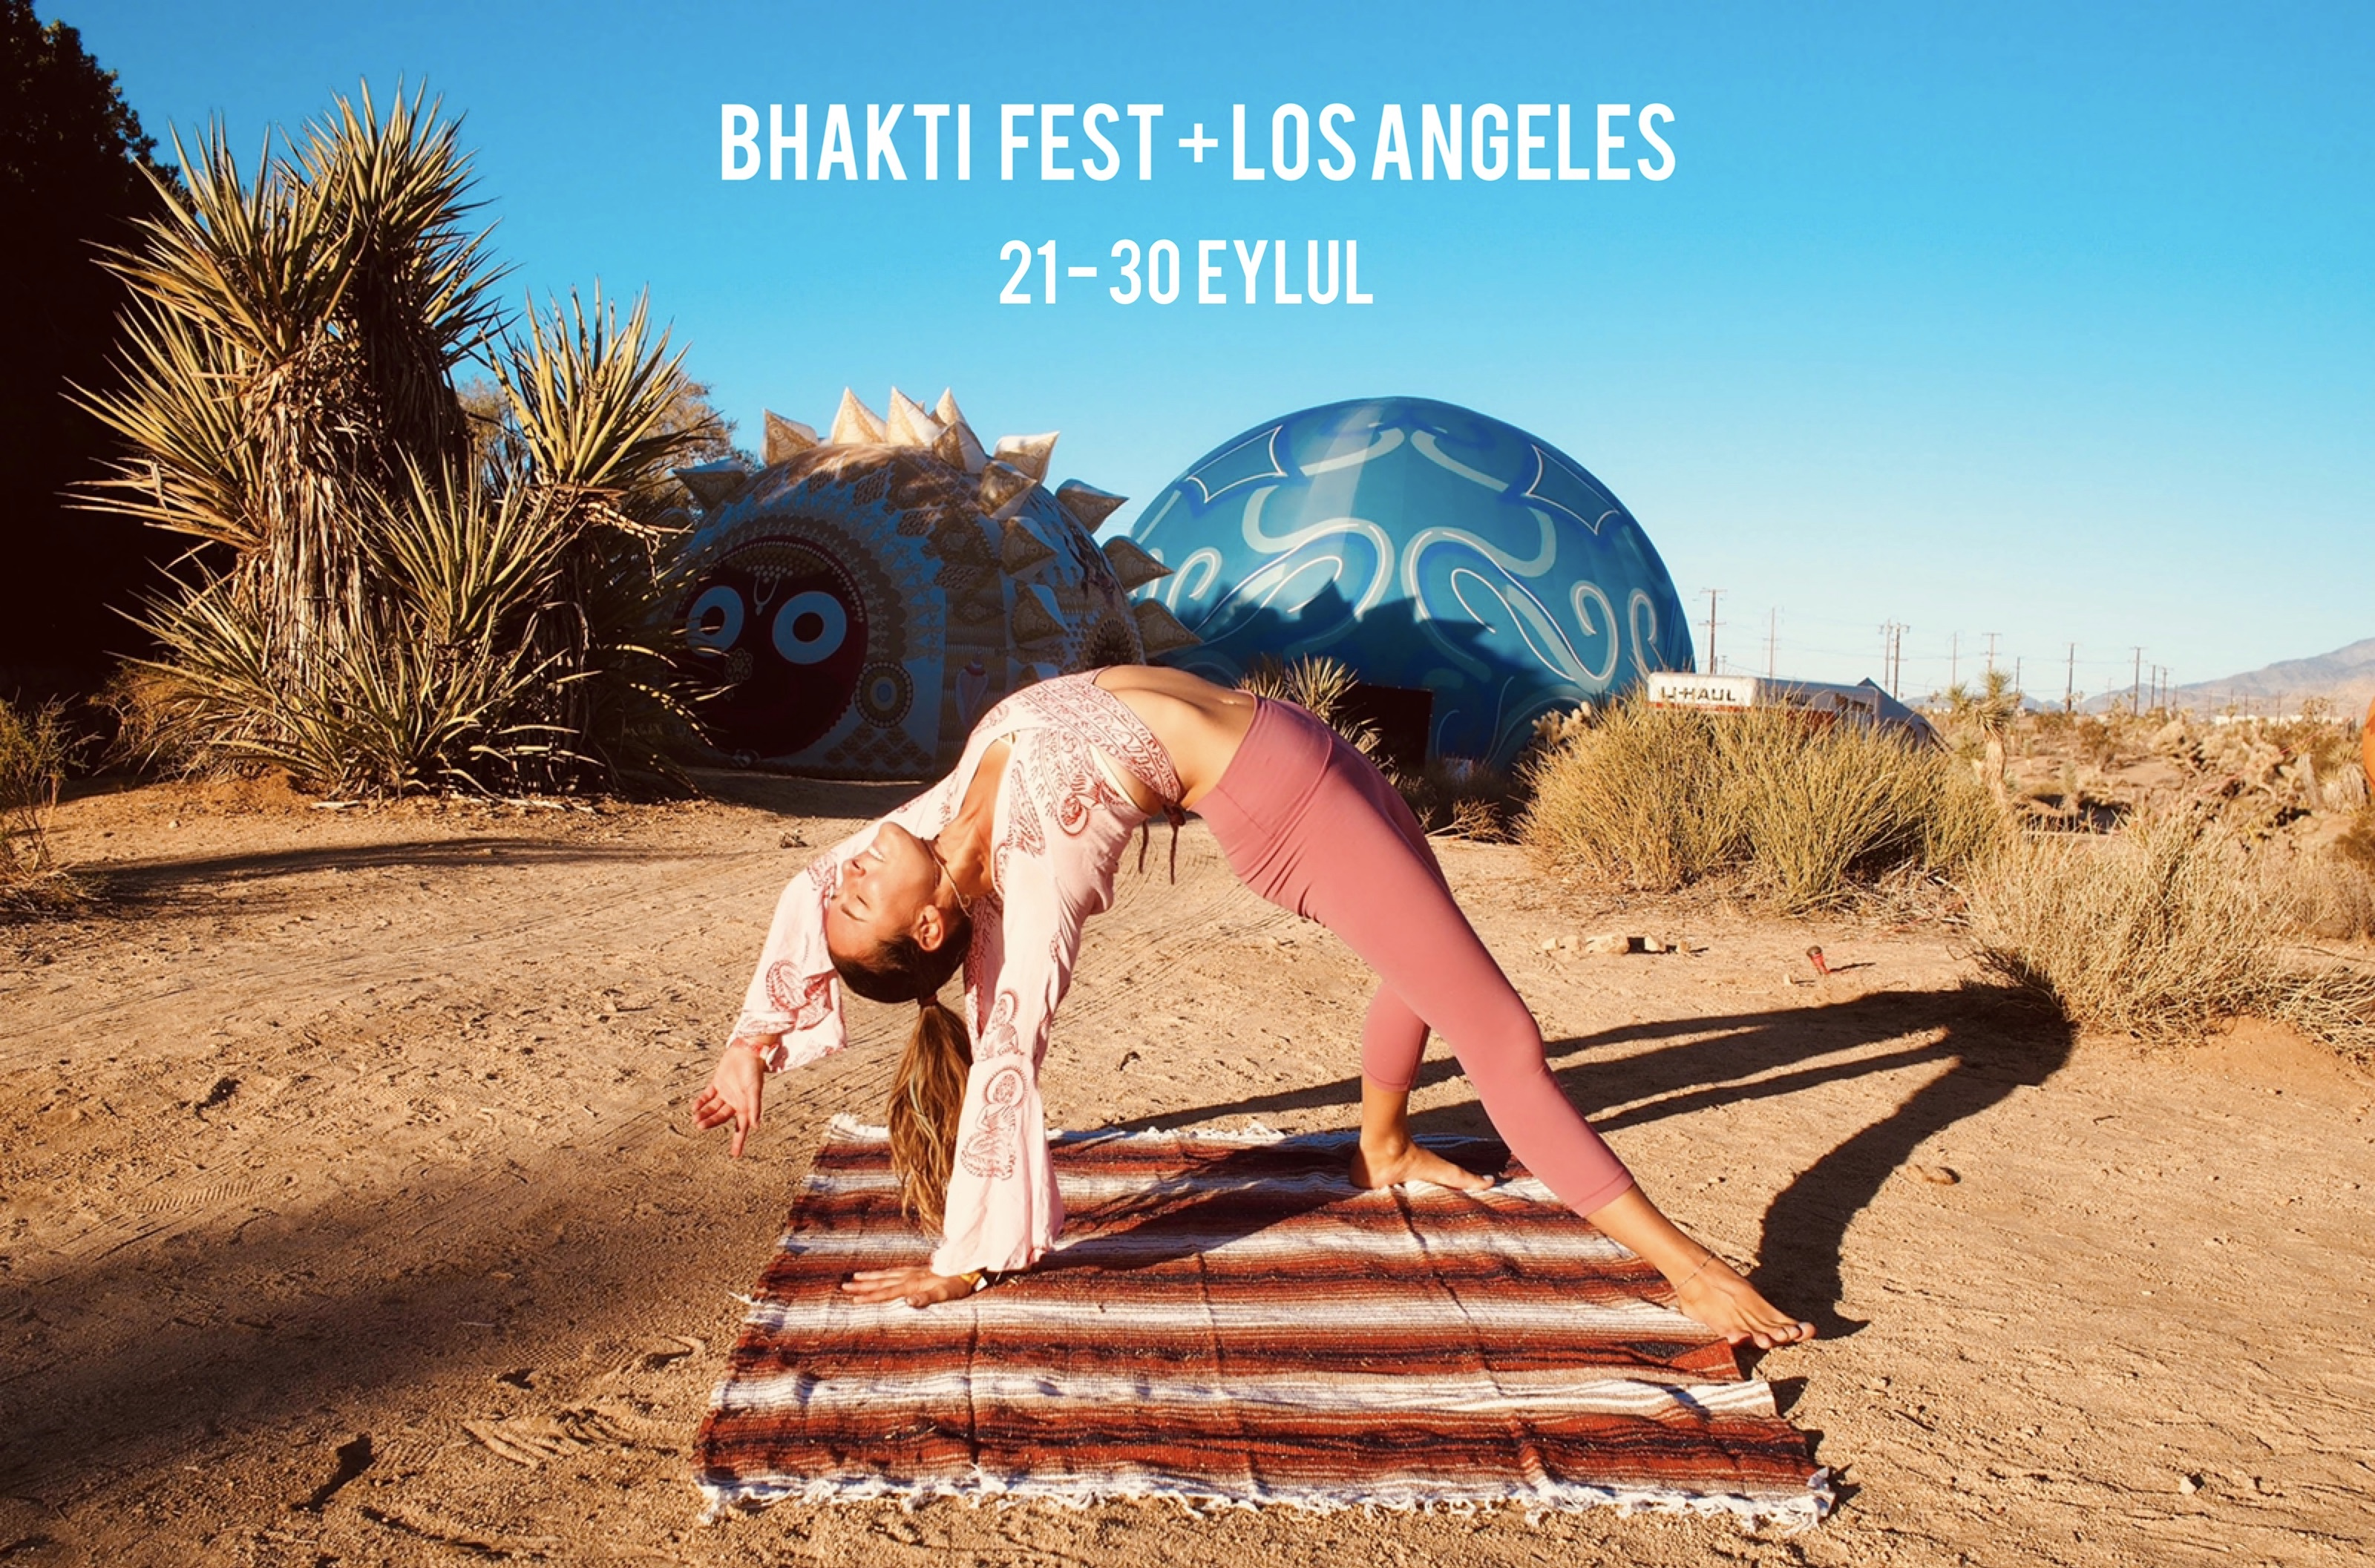 Bhakti Fest + Los Angeles